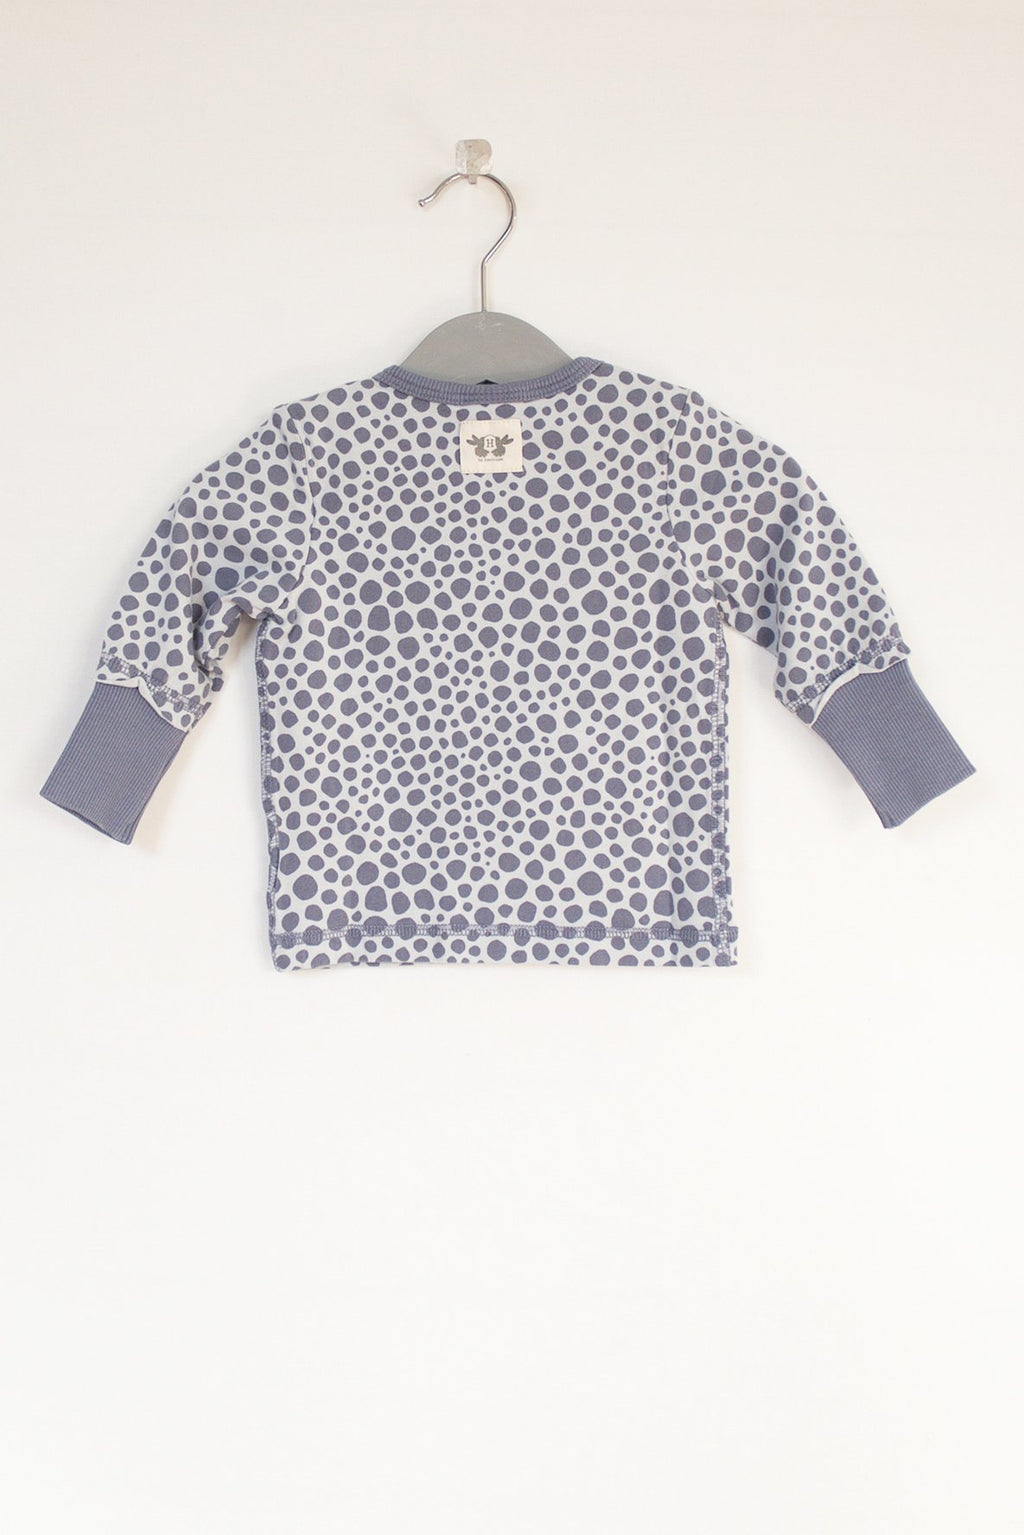 ELLIOT long sleeve top - print indigo blue